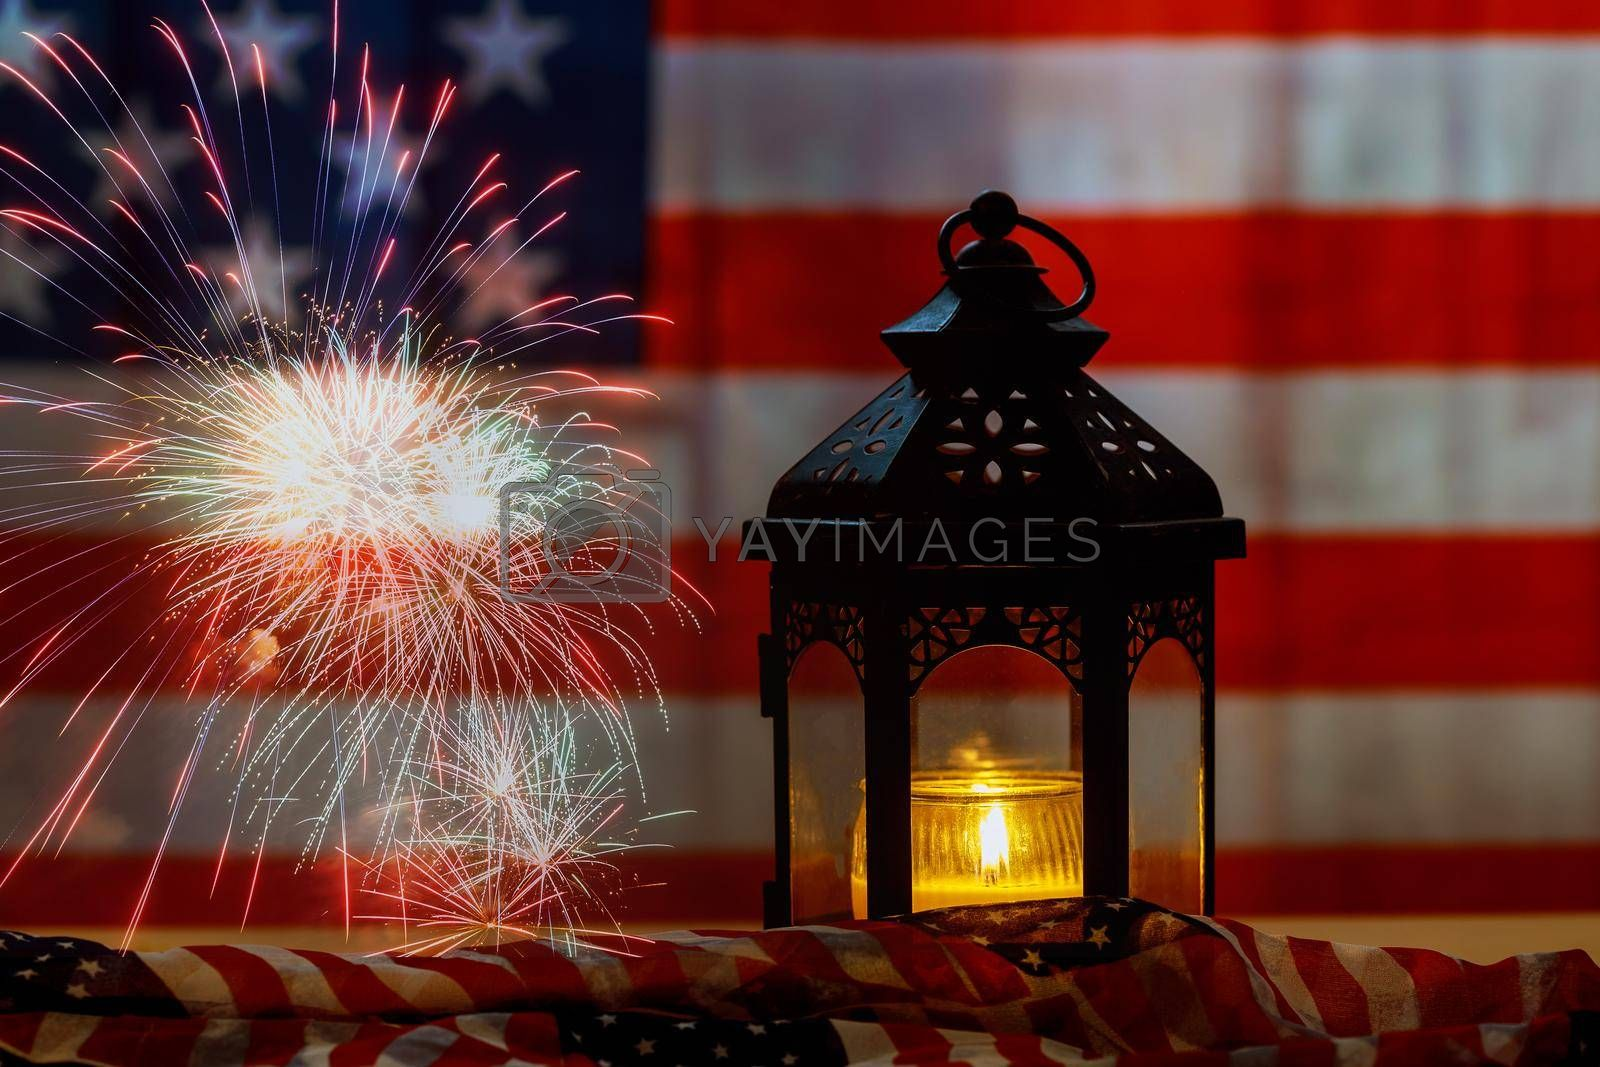 American flag background on Memorial day honor respect patriotic military US in Candle memory